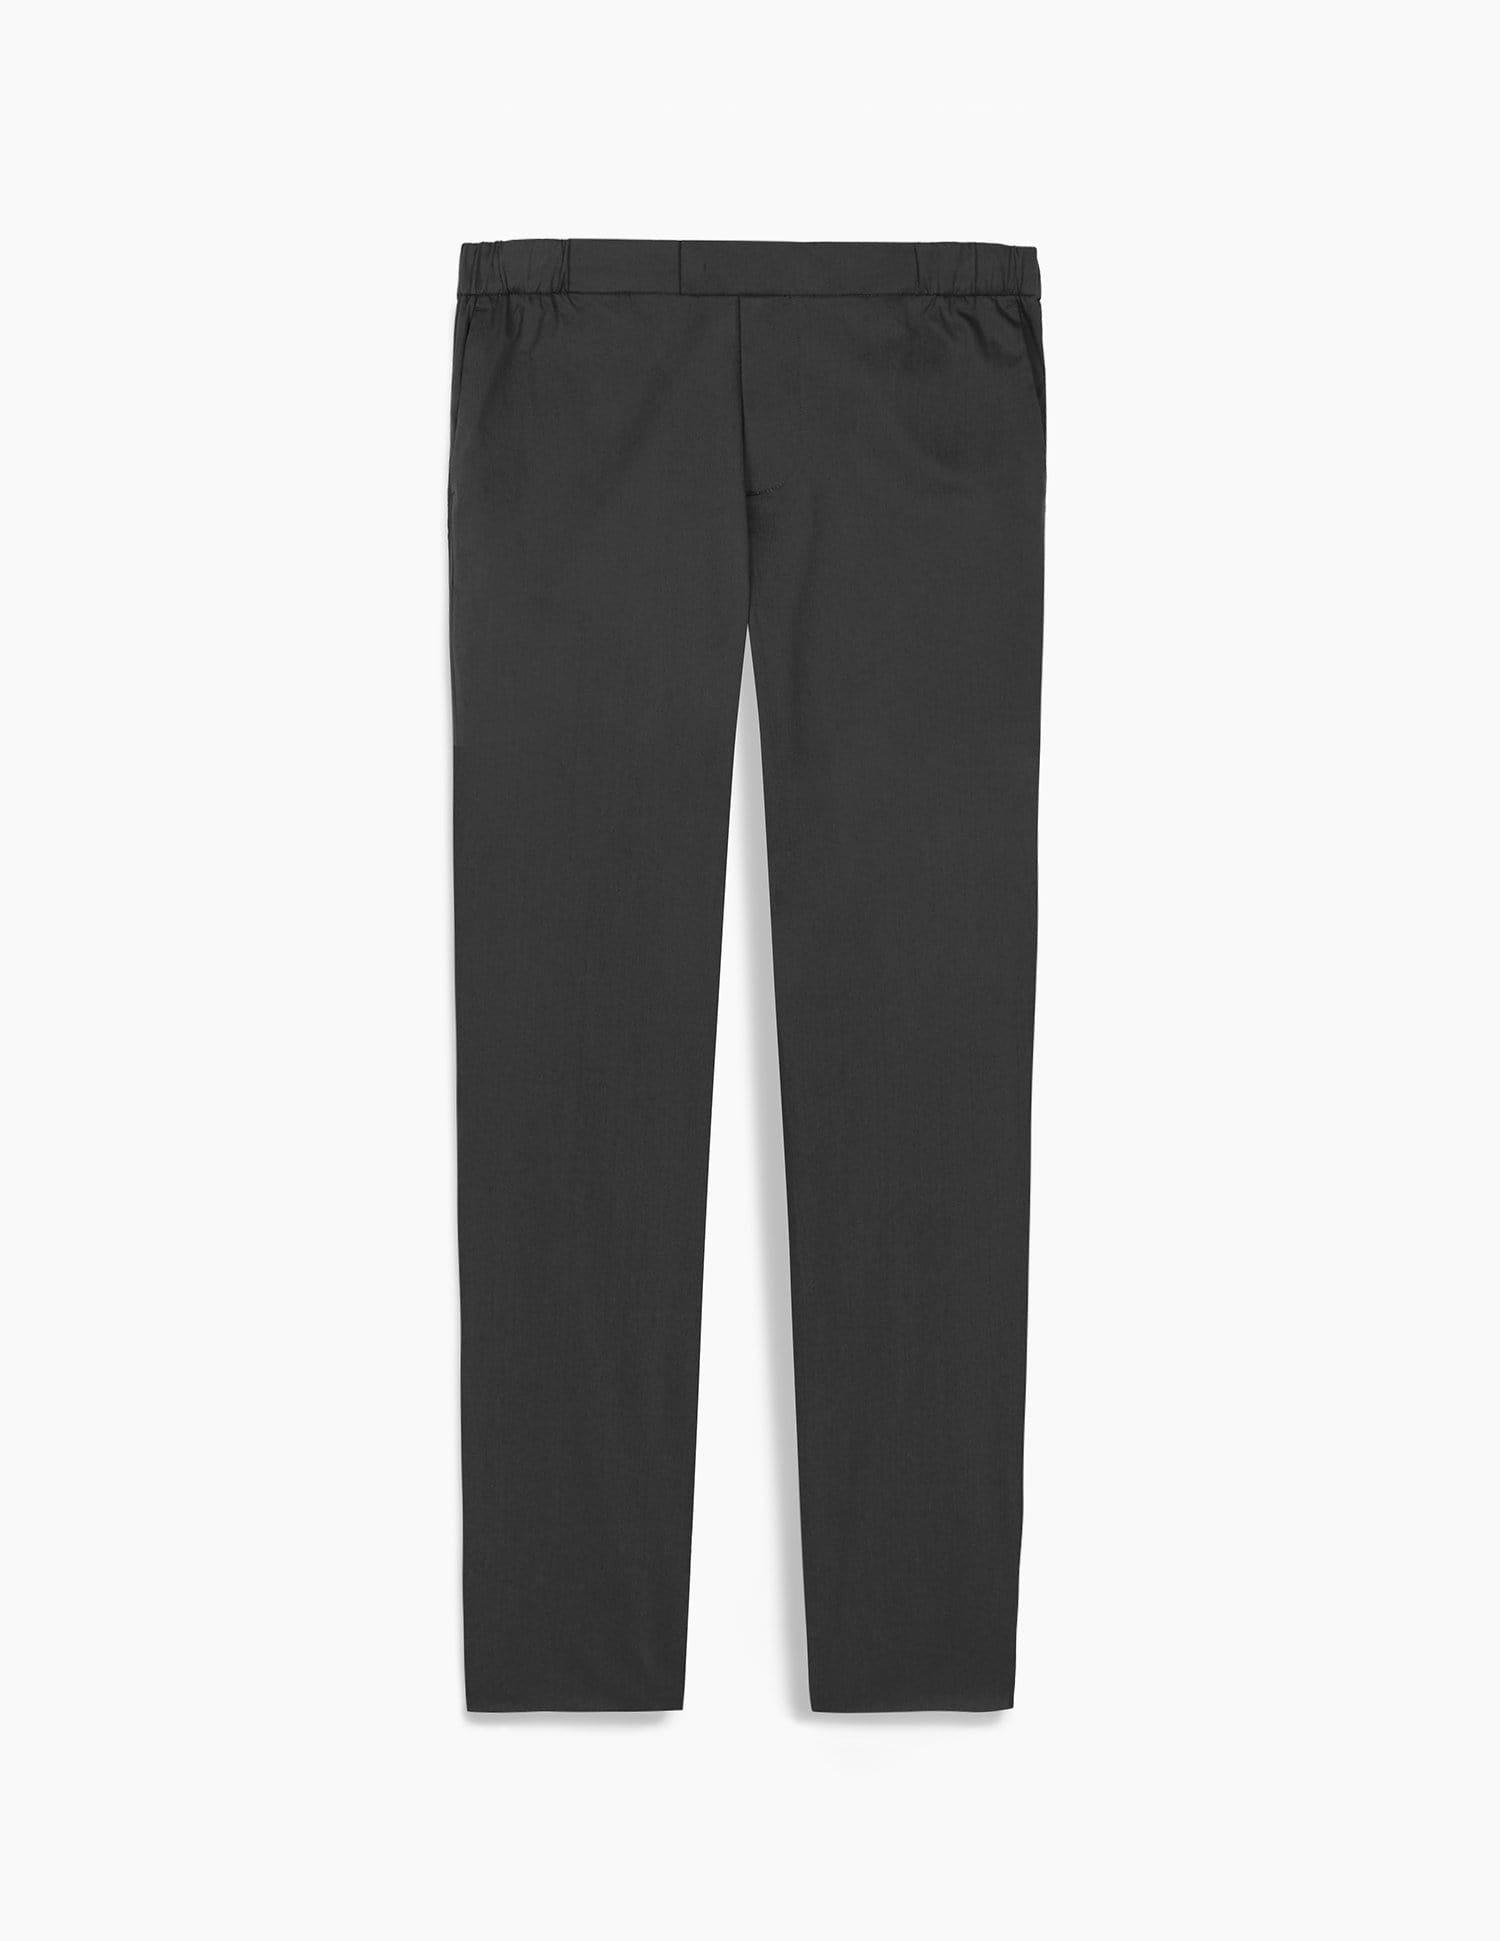 The 24 Trouser Heavyweight || Slate Grey | Heavyweight Edition